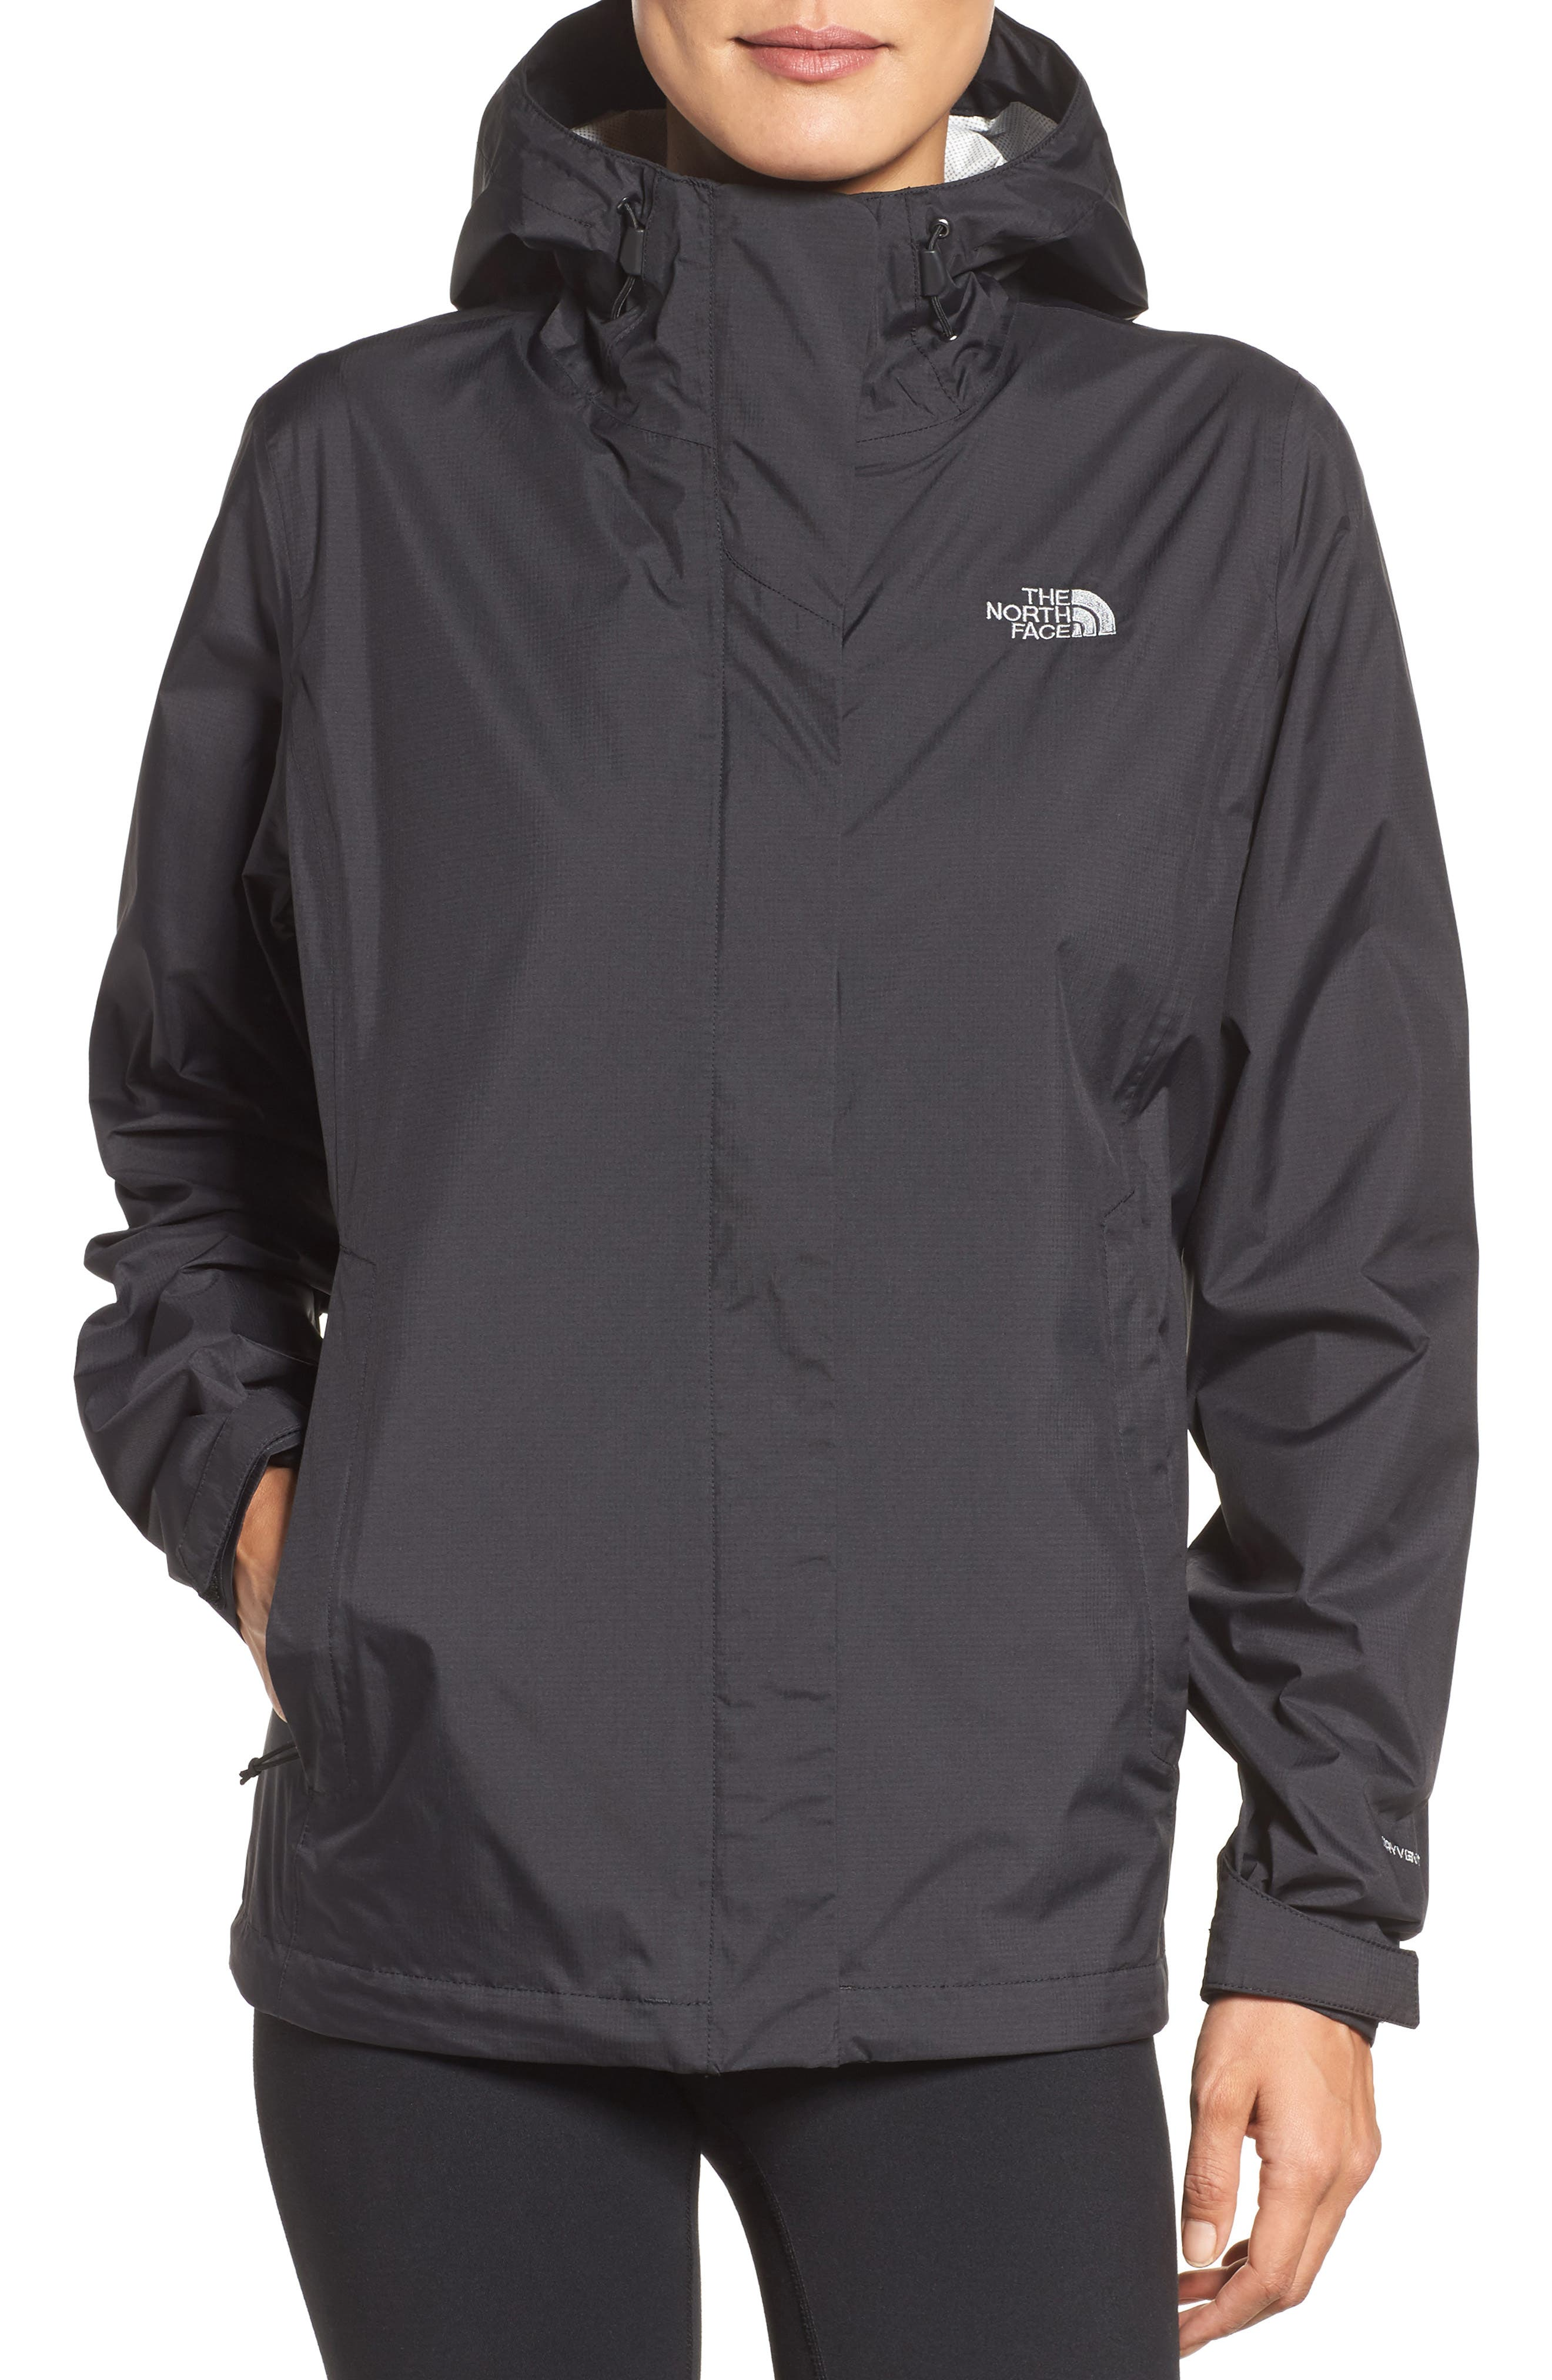 The North Face Nuptse White Plaid Red C1l5911 - Trainers